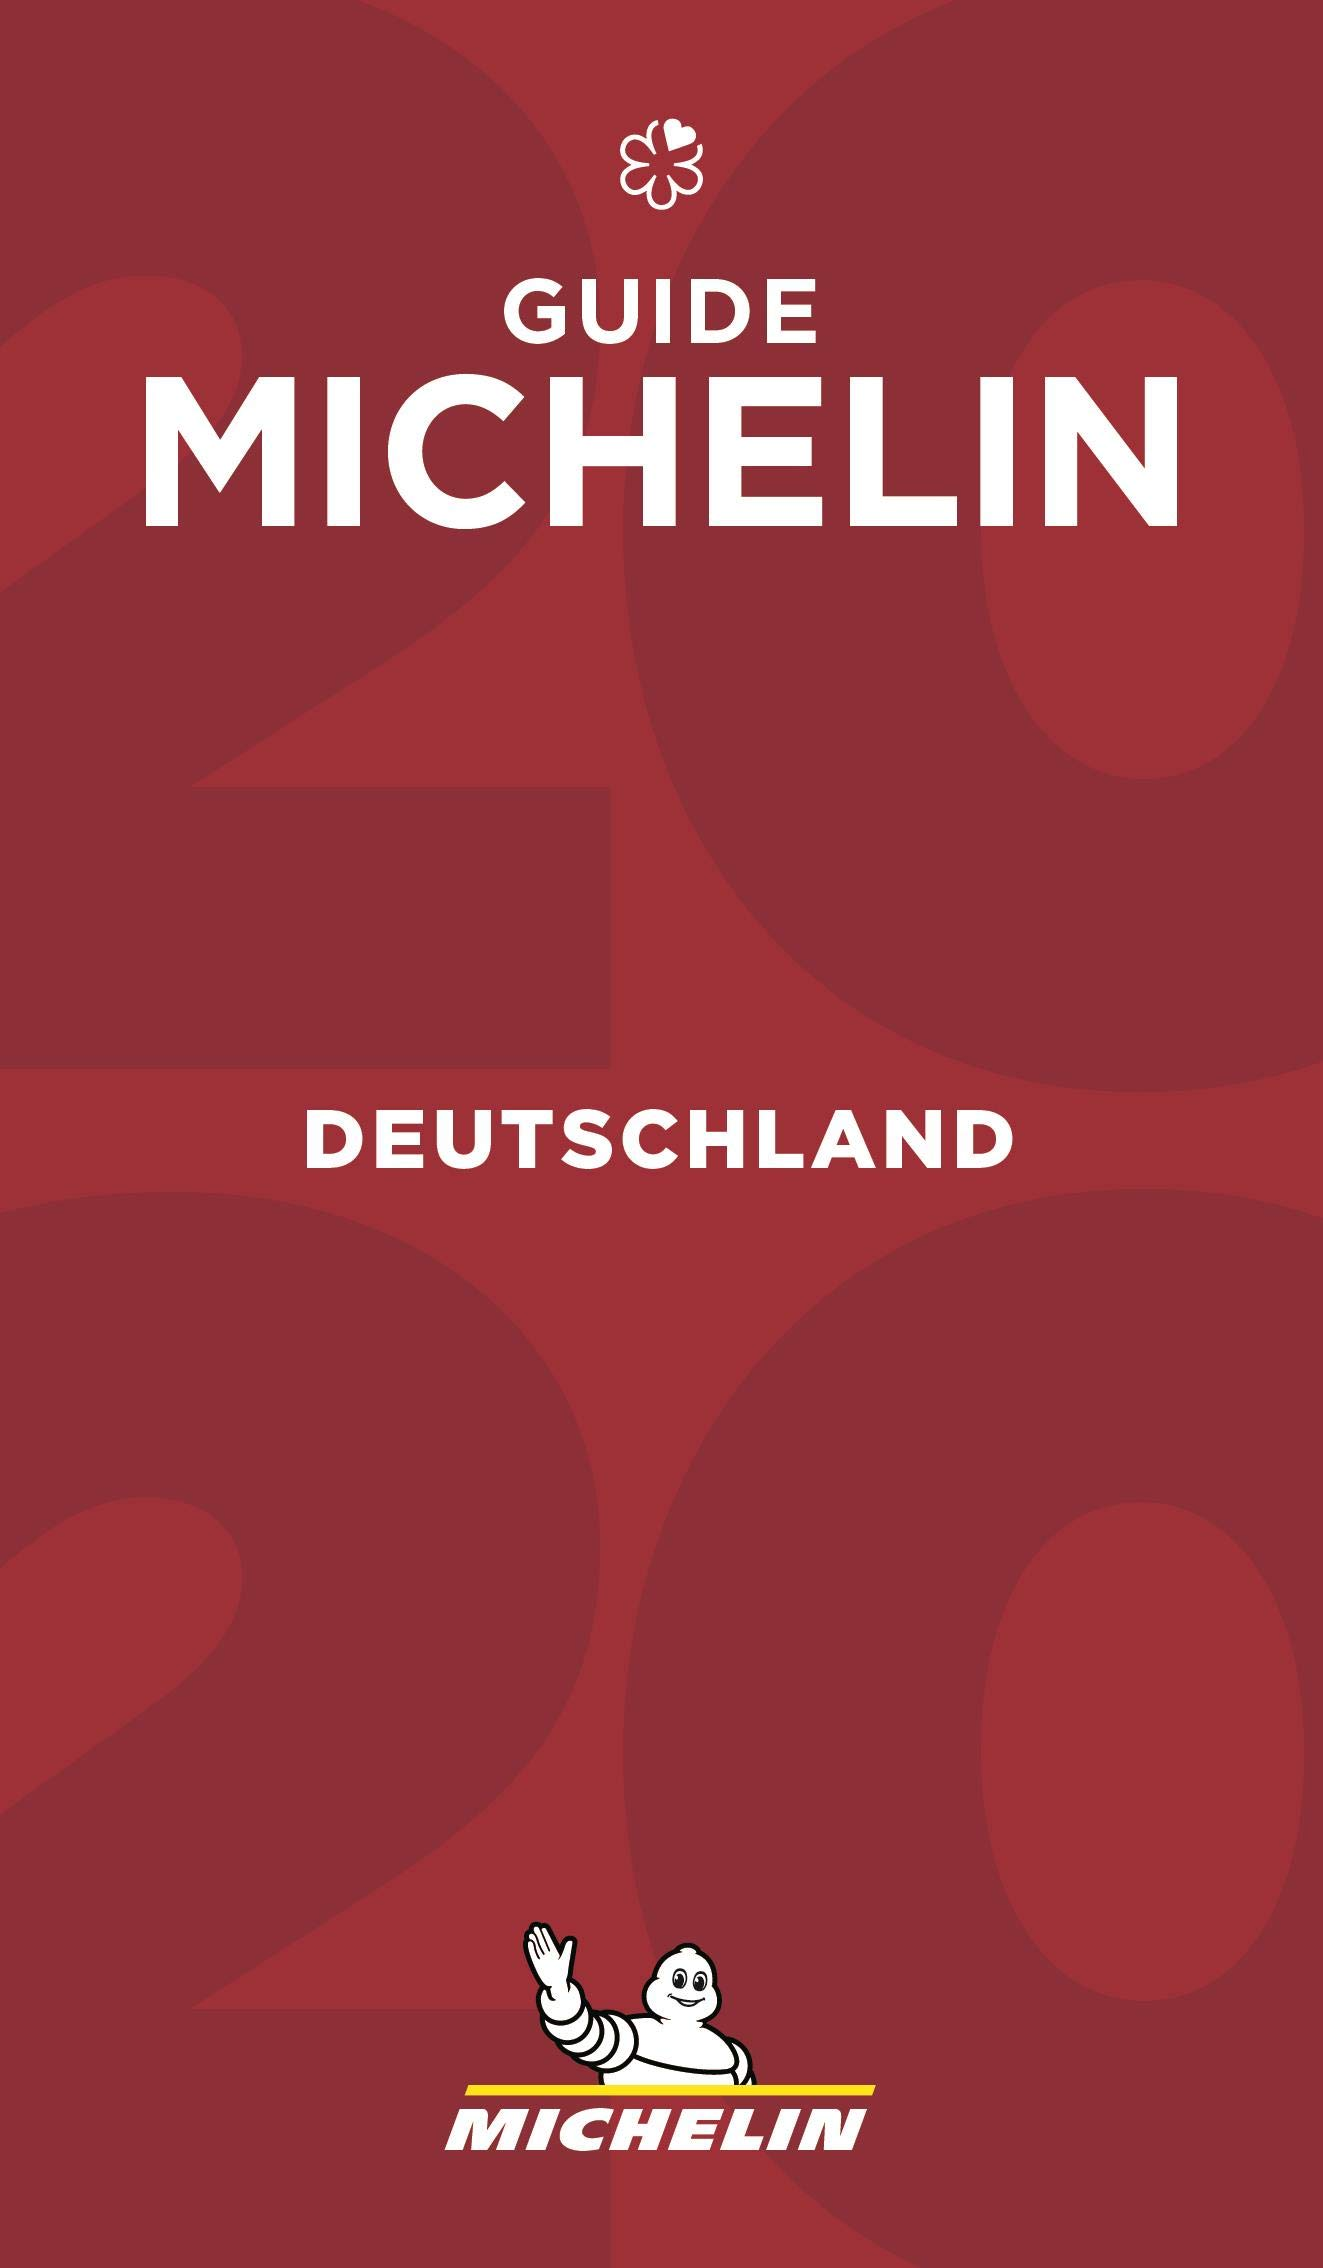 michelin_germany_2020.jpg